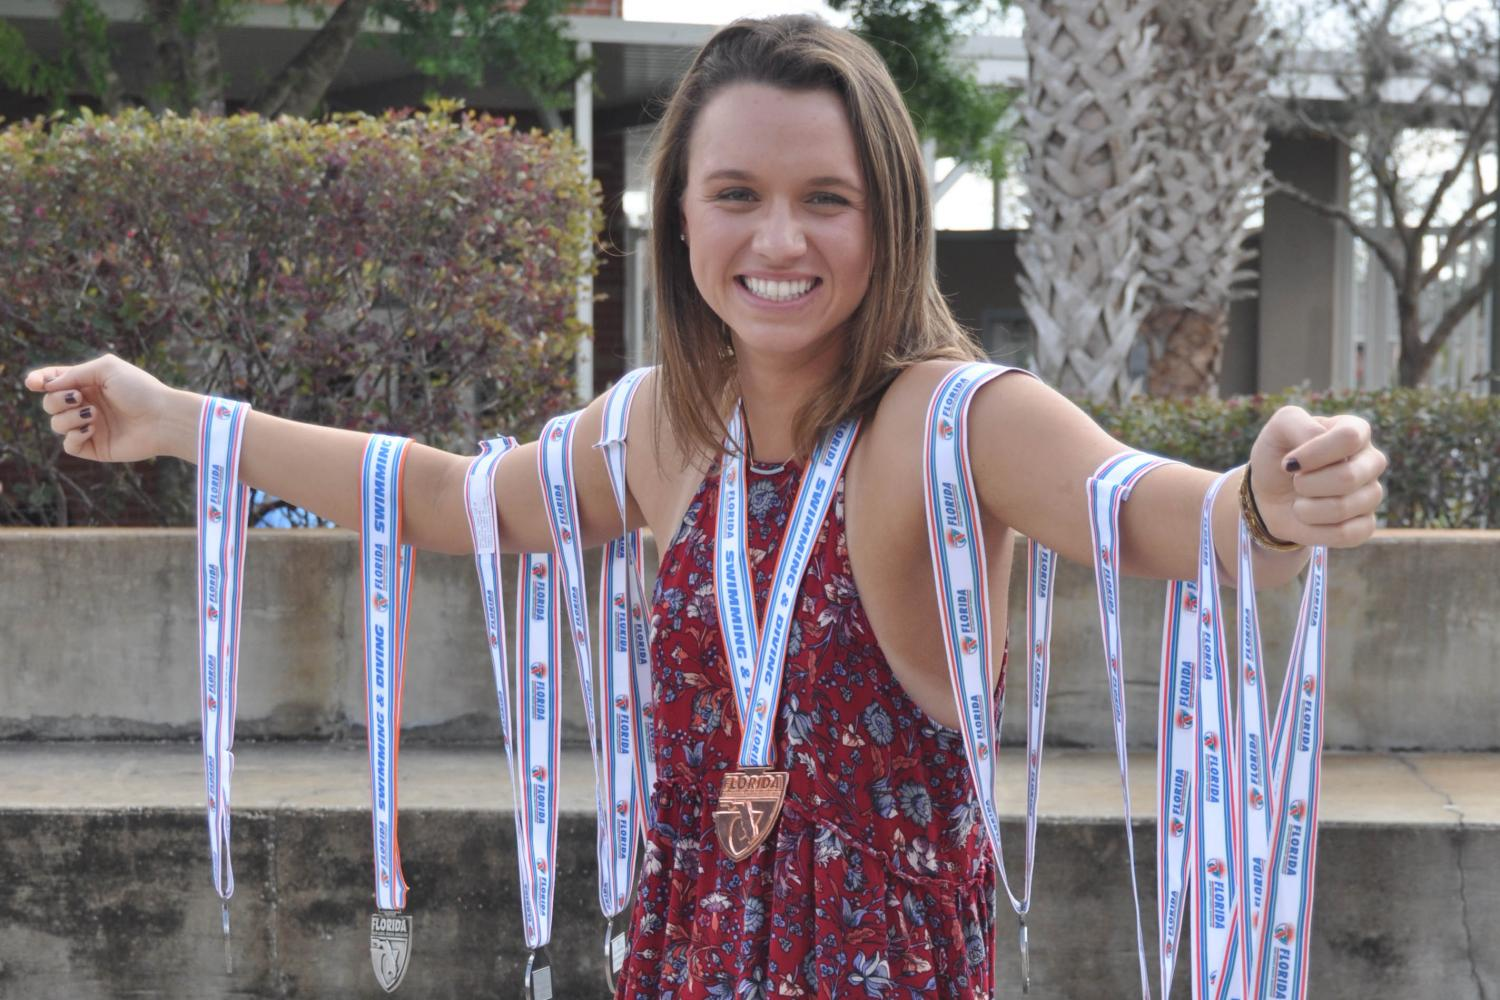 Boddiford+with+her+collection+of+medals+won+throughout+her+four+years+competing+in+high+school+swimming+tournaments.